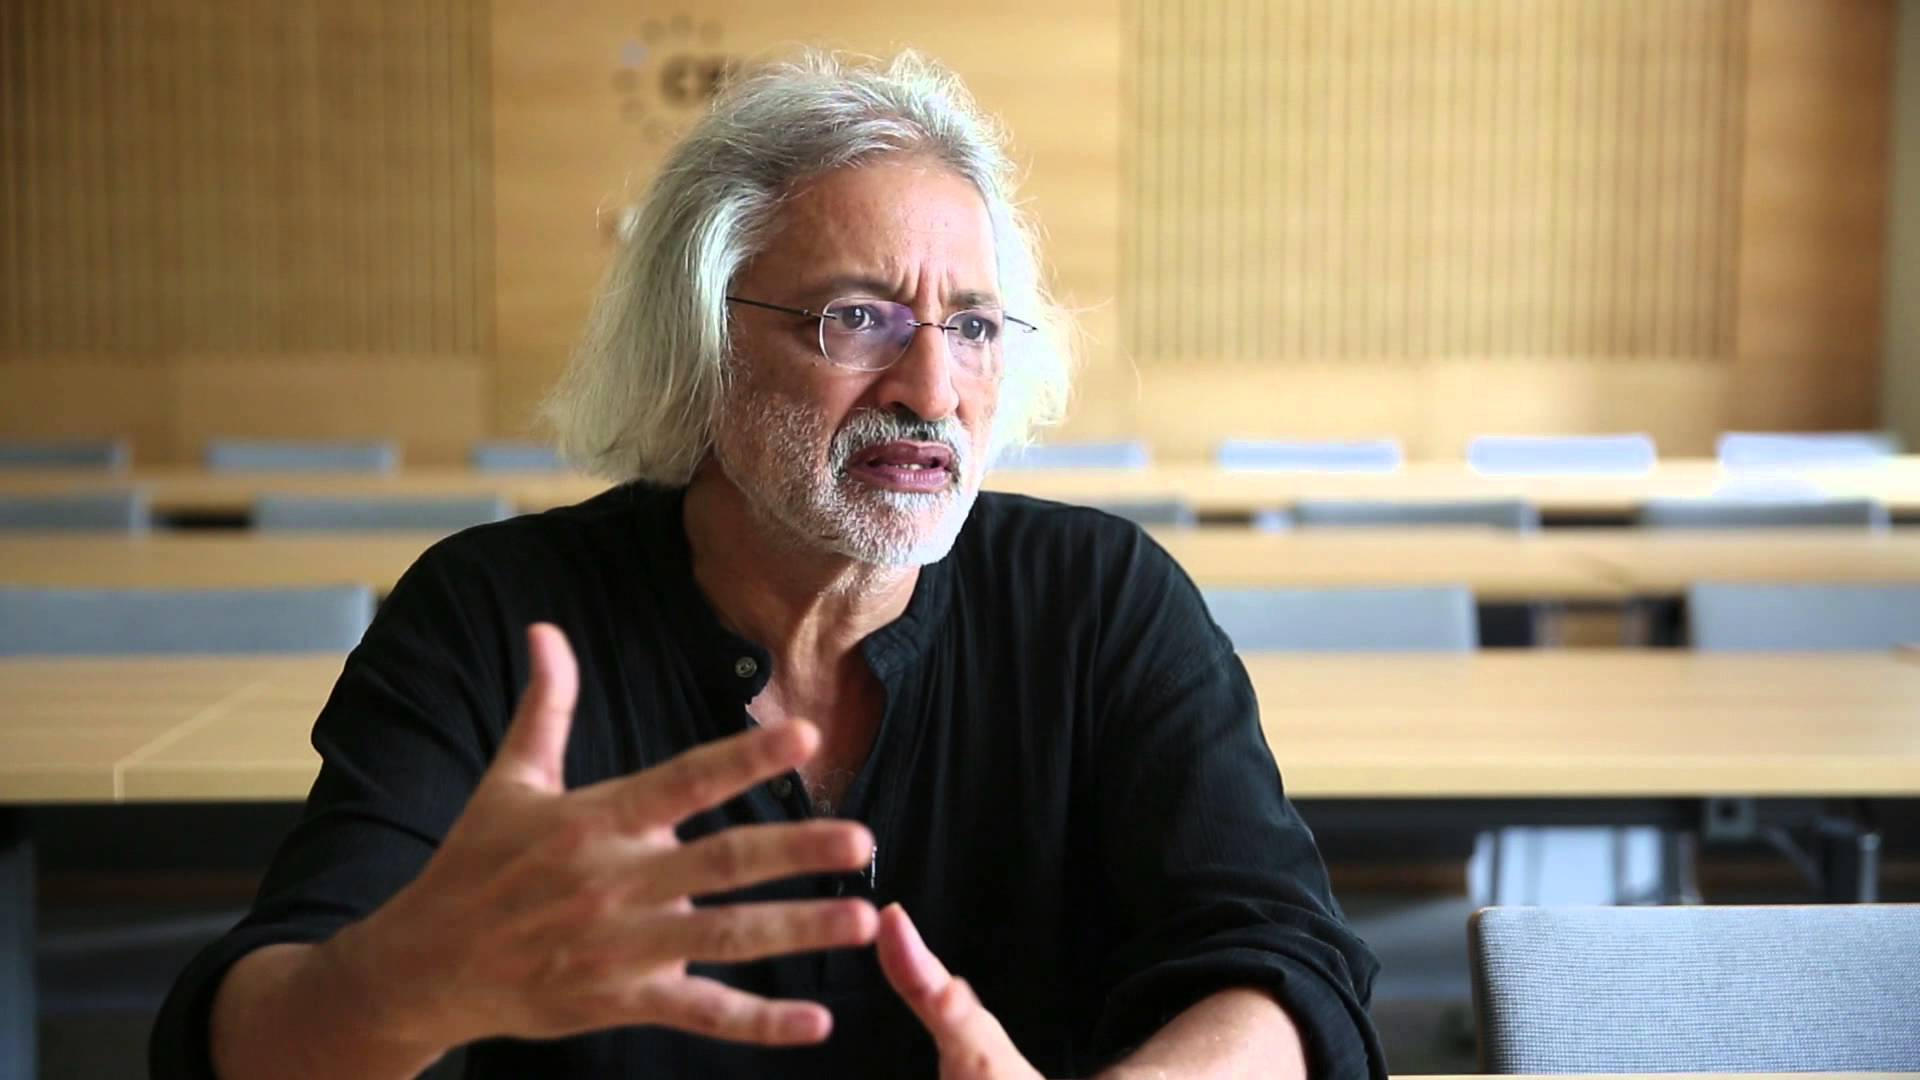 Kerala HC Gives Go-Ahead for Screening Anand Patwardhan's Film in Kerala Festival